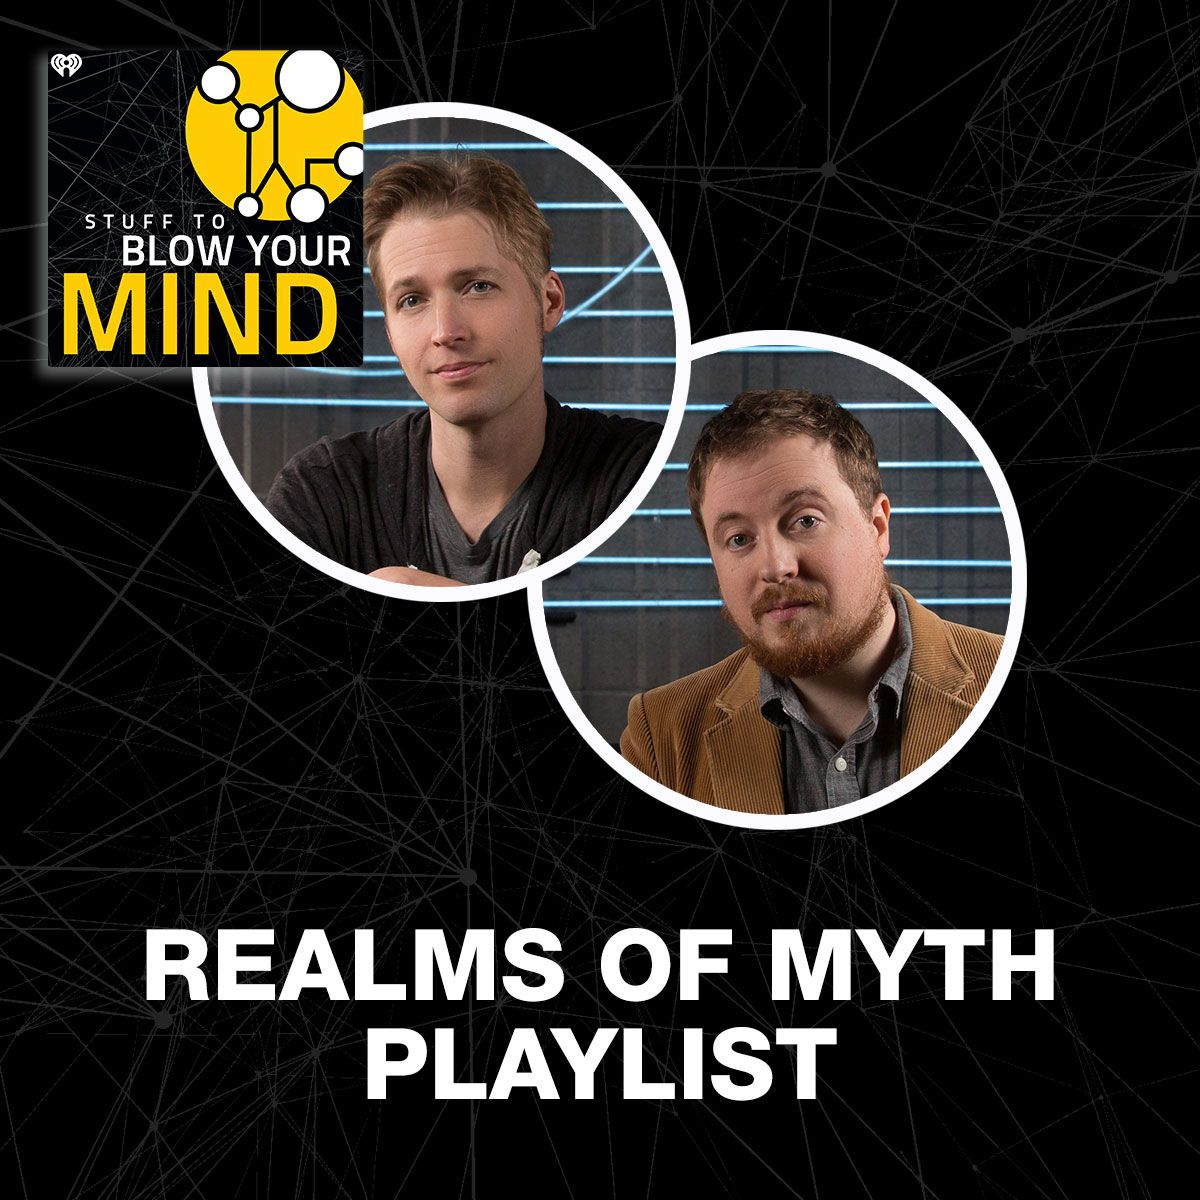 Realms of Myth Playlist, Part 7: The Trident